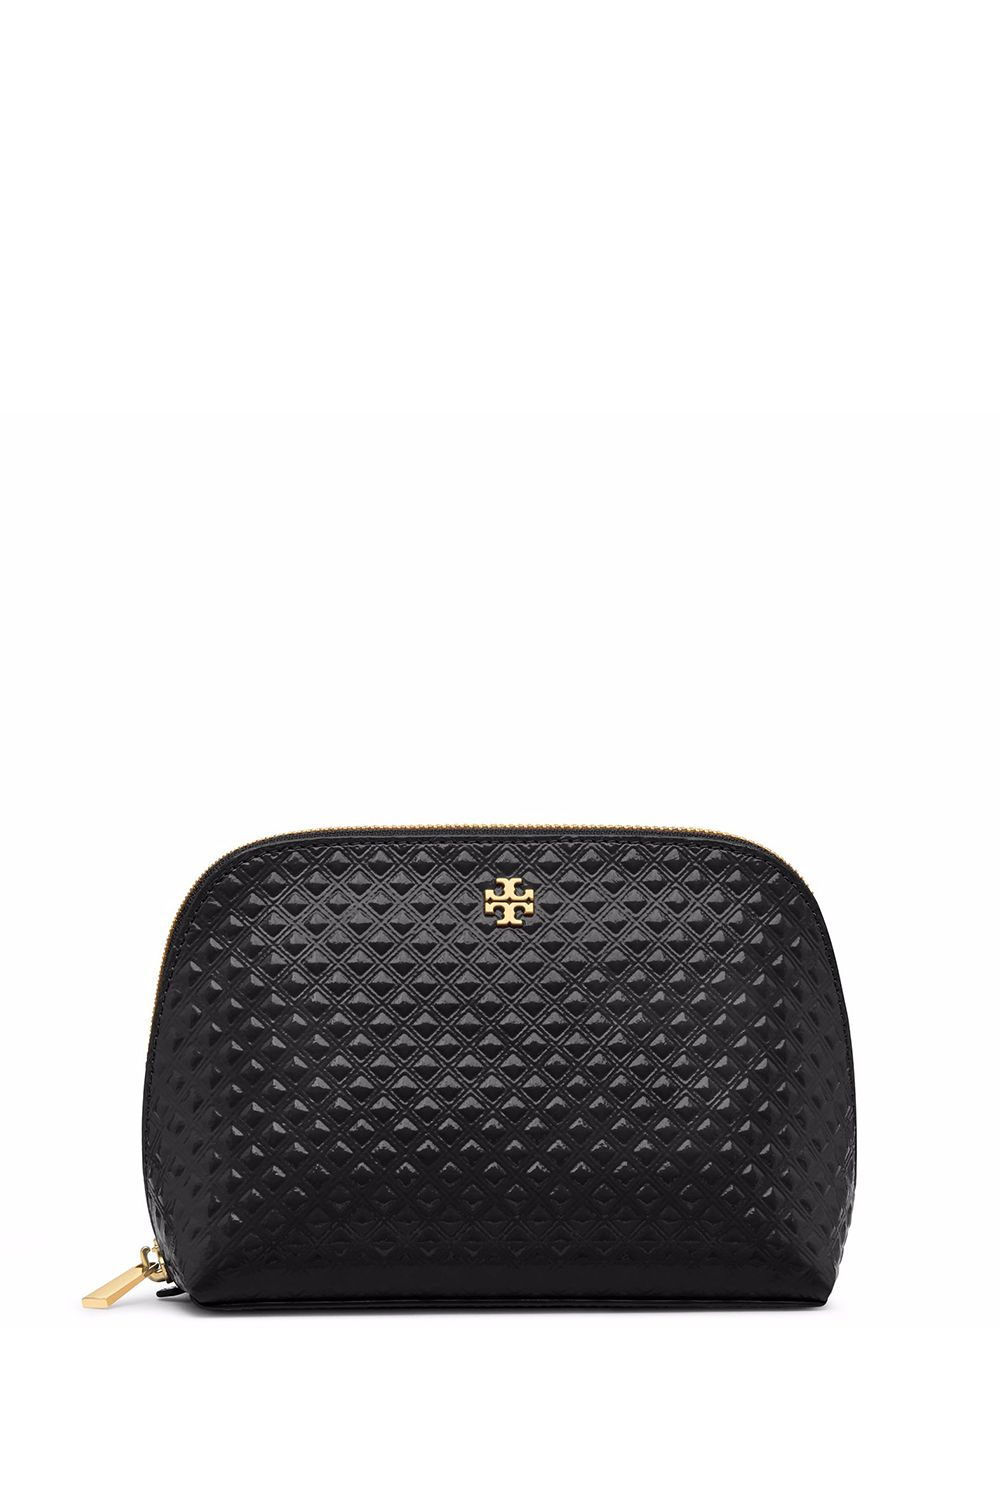 0eb7248c9c25 Chic Makeup Bags You Can Use as Clutch Purses - Best Cosmetic Cases